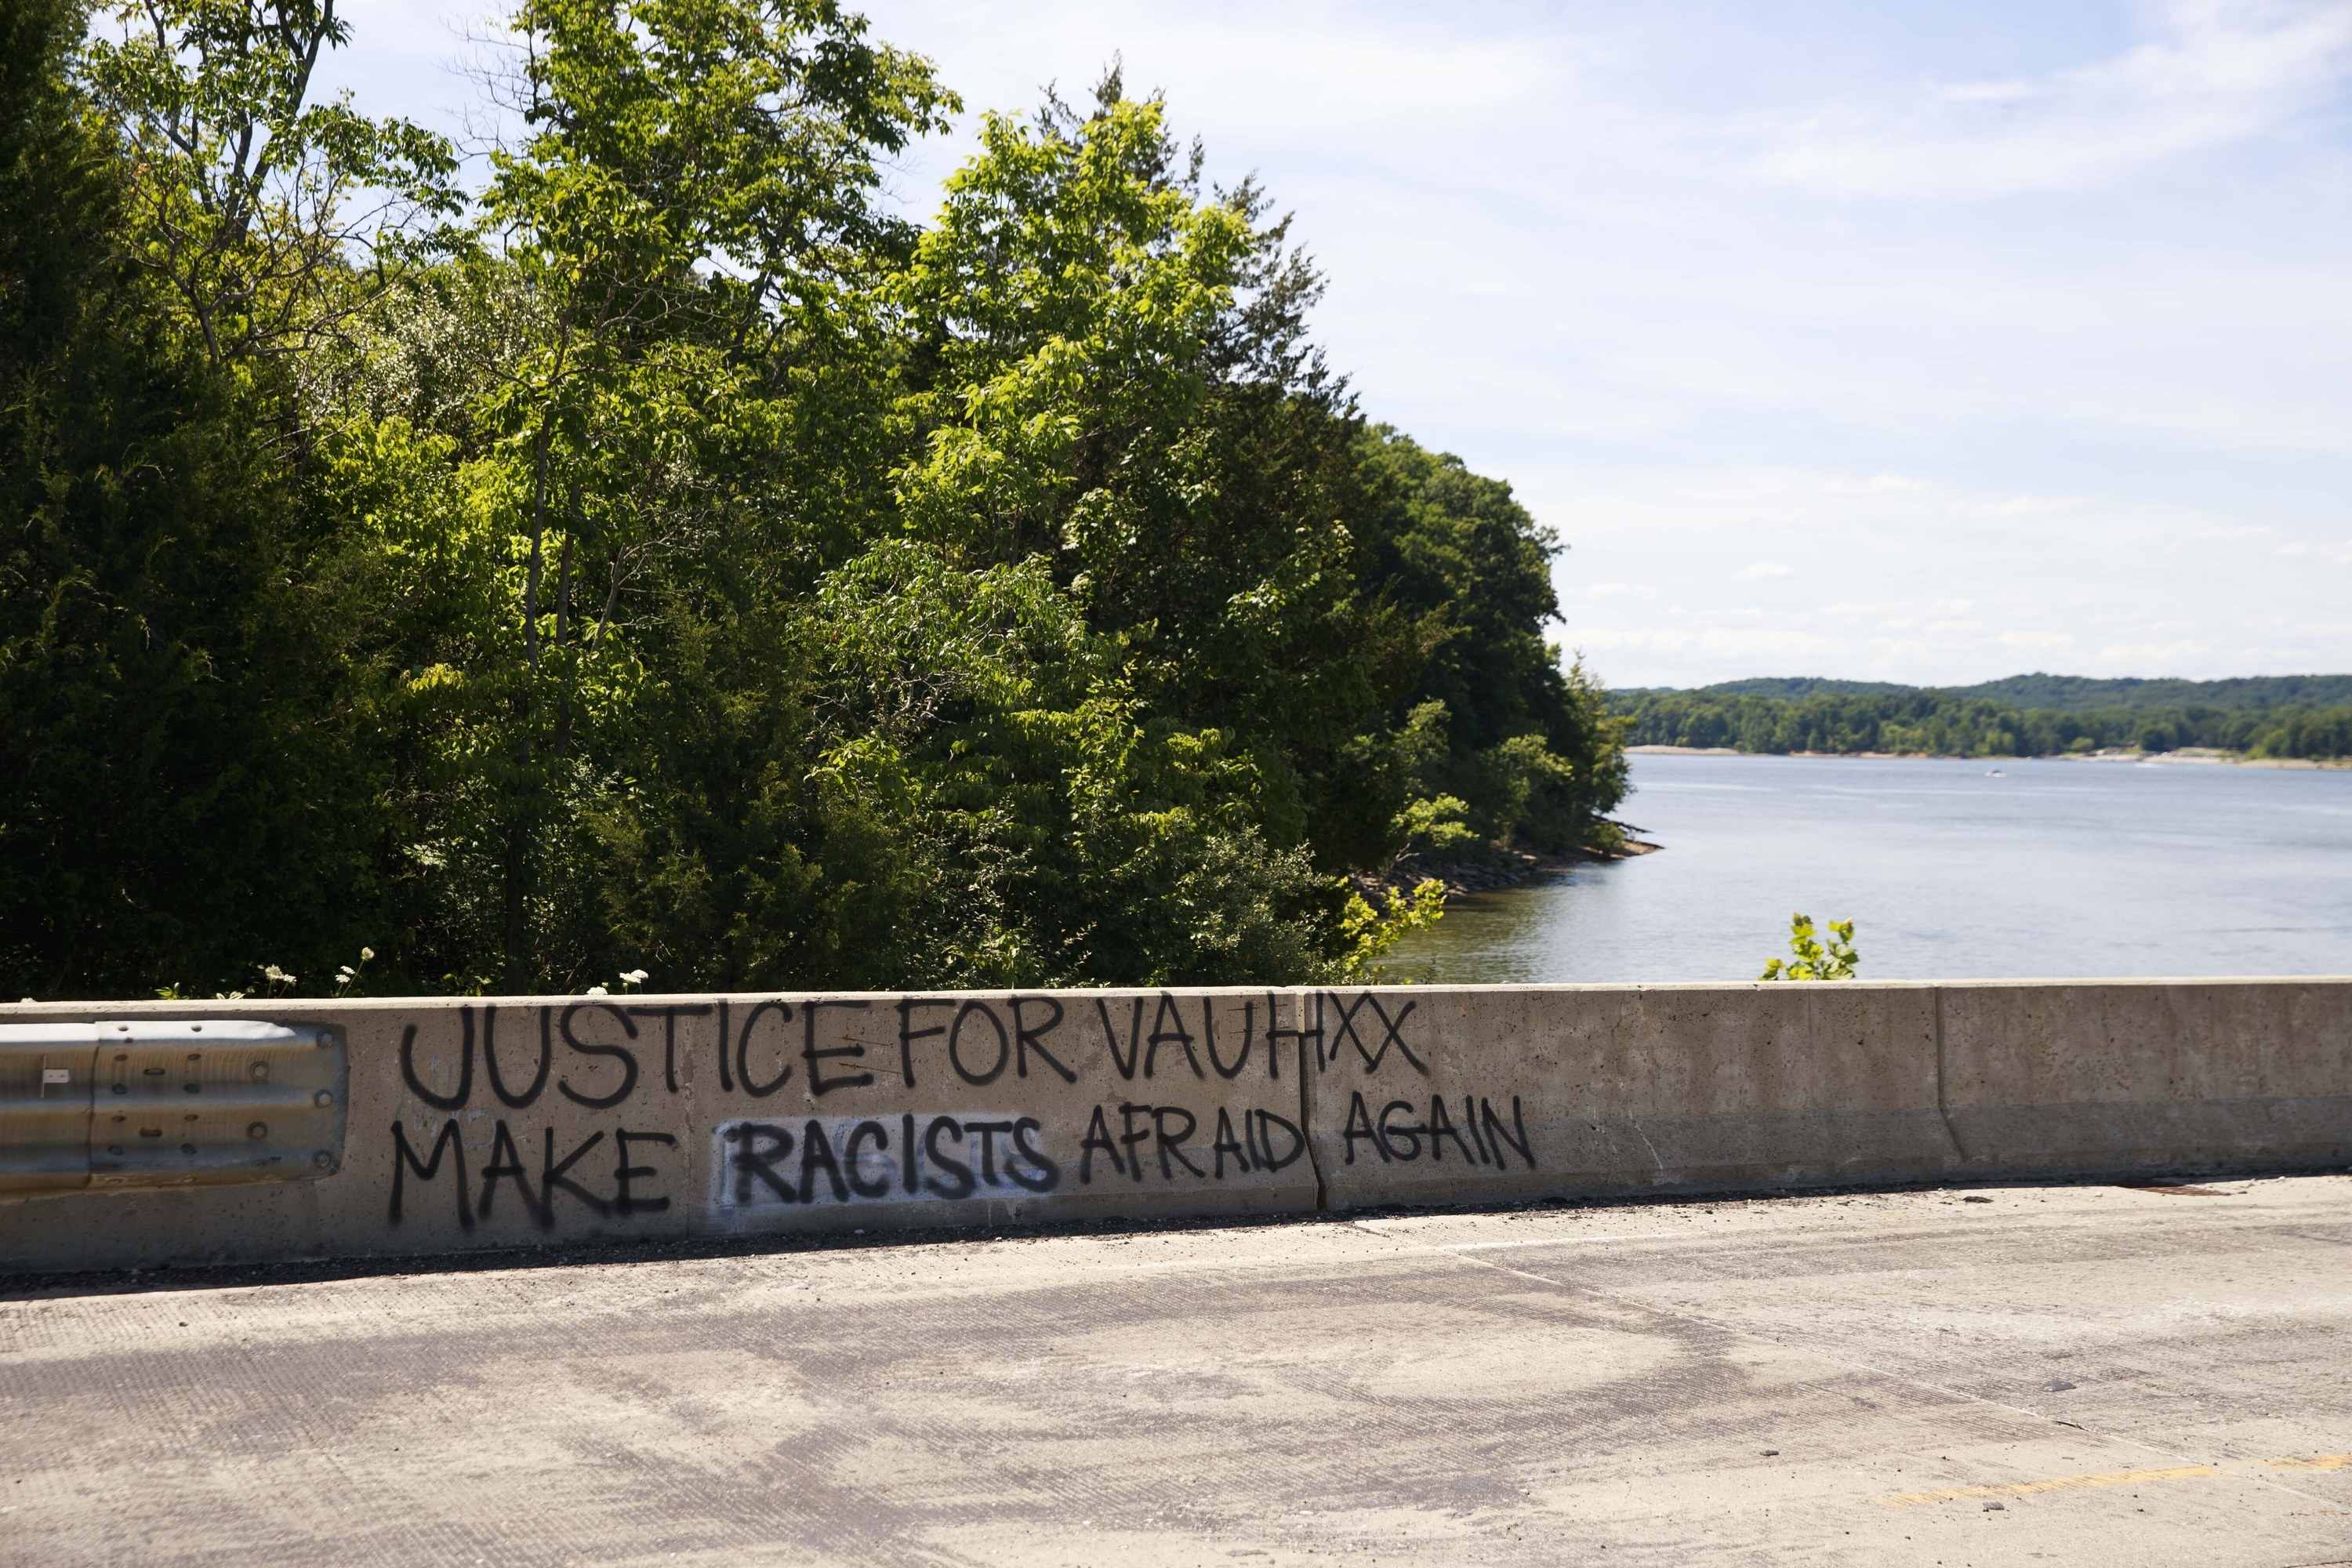 "Graffiti saying ""Justice for Vauhxx, make racists afraid again"" is painted on a road barrier next to a lake with trees near where Booker was allegedly assaulted"